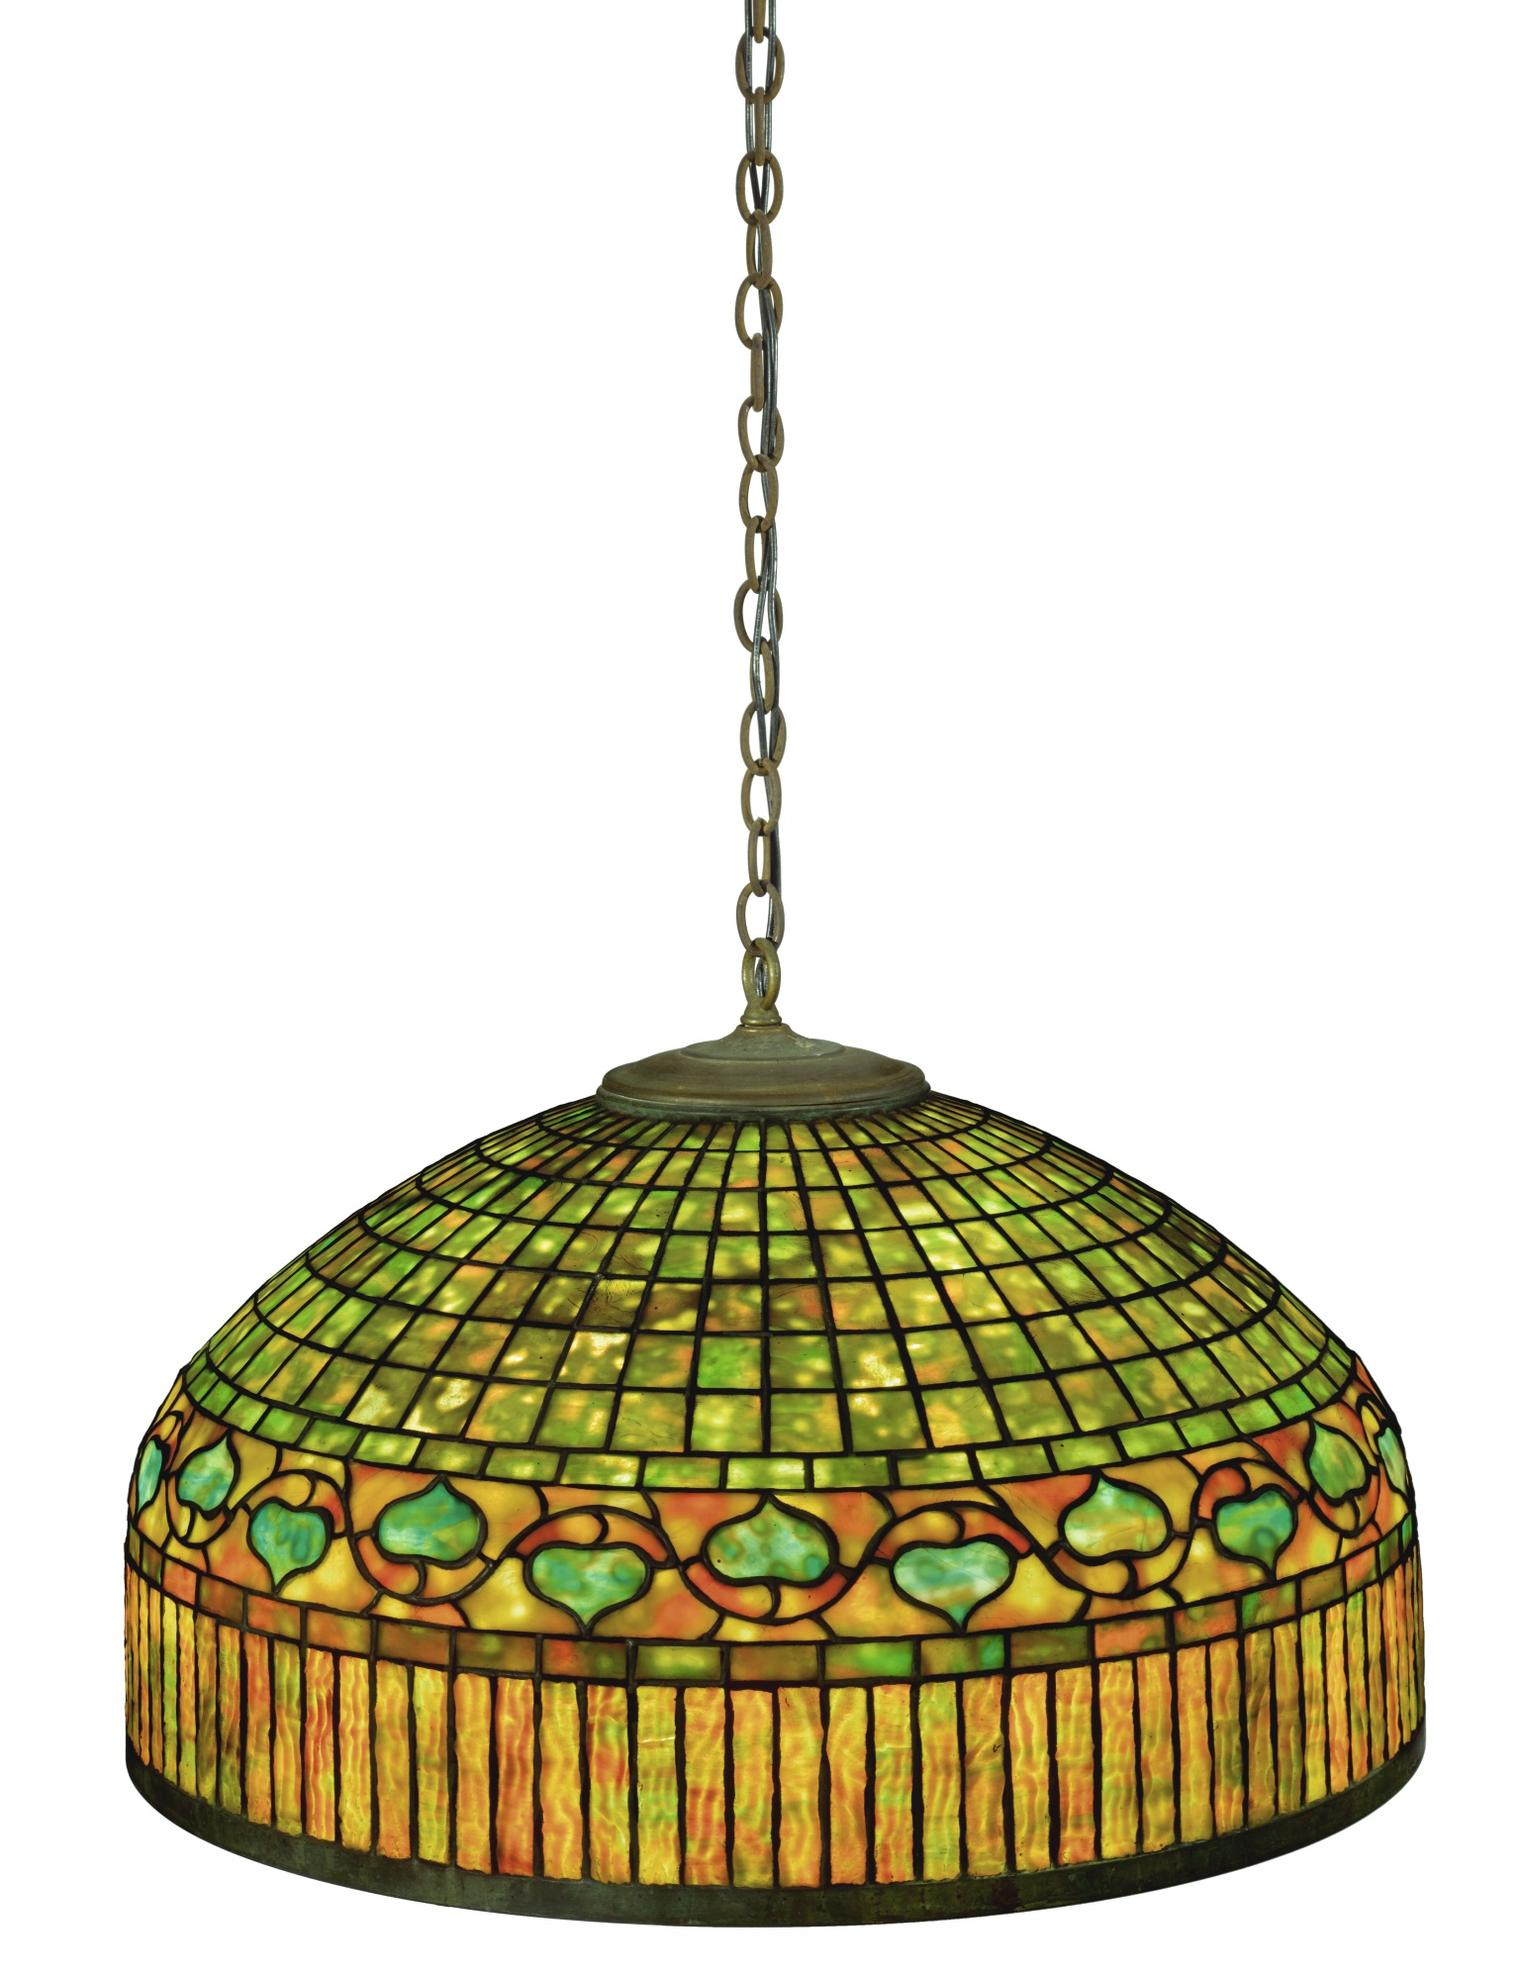 Tiffany Studios - 'Curtain Border' Chandelier-1915